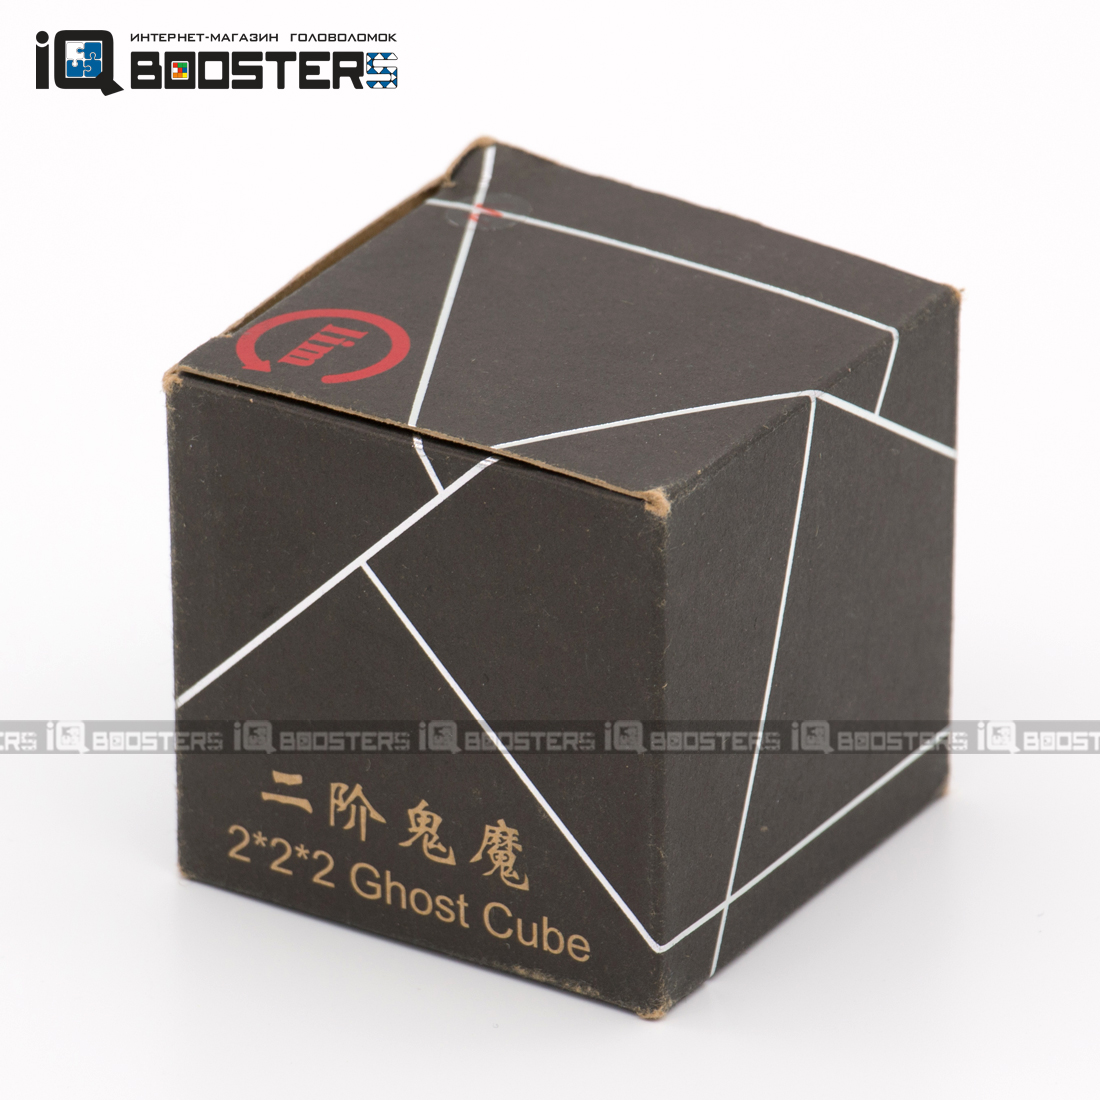 limcube_ghost_2x2_4